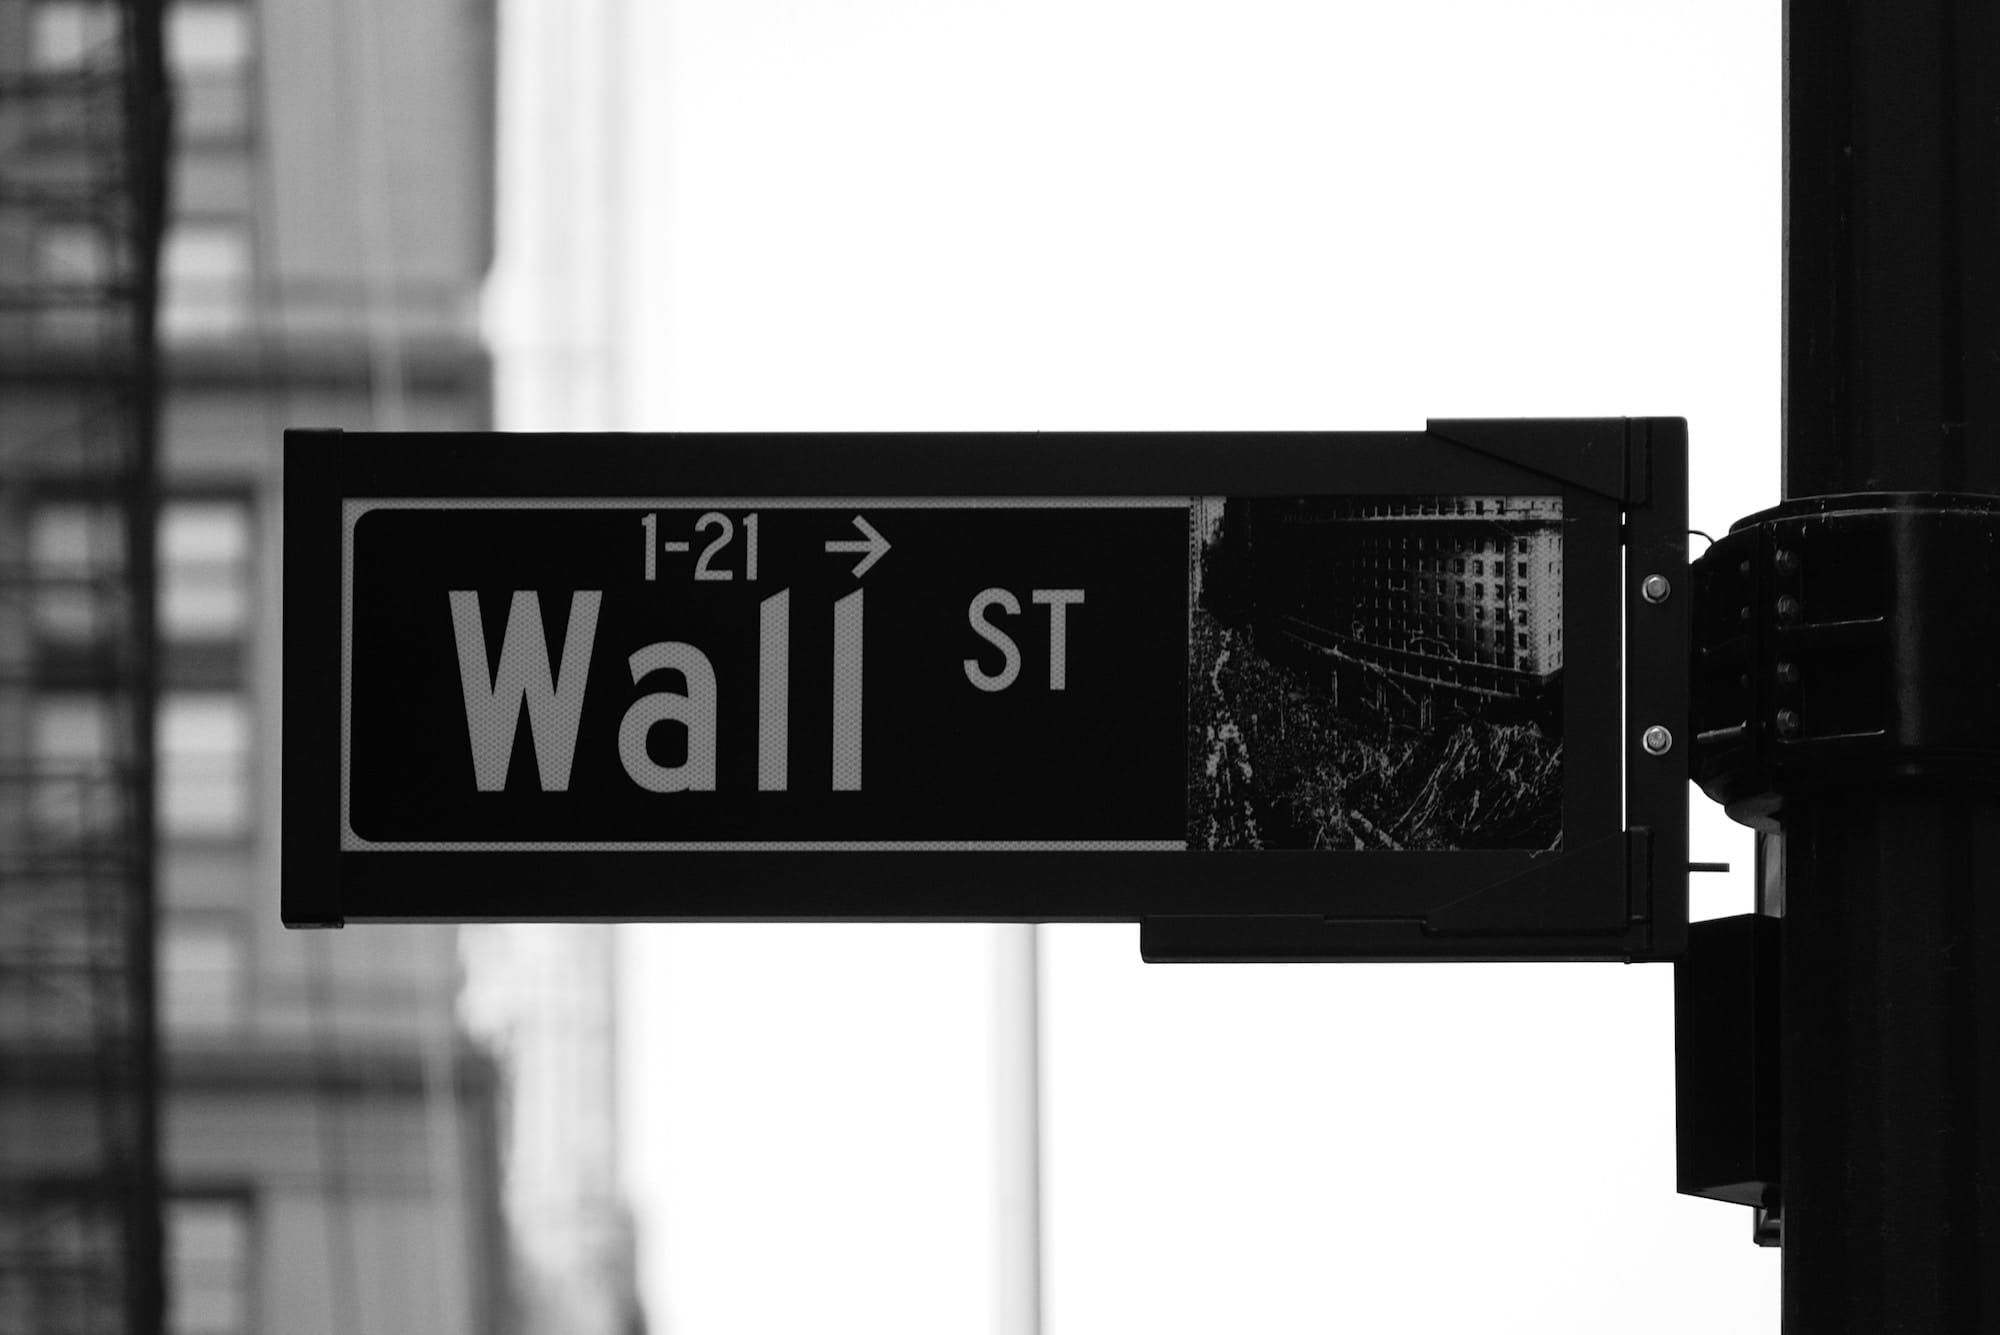 Wall St Sign representing Growth vs Value